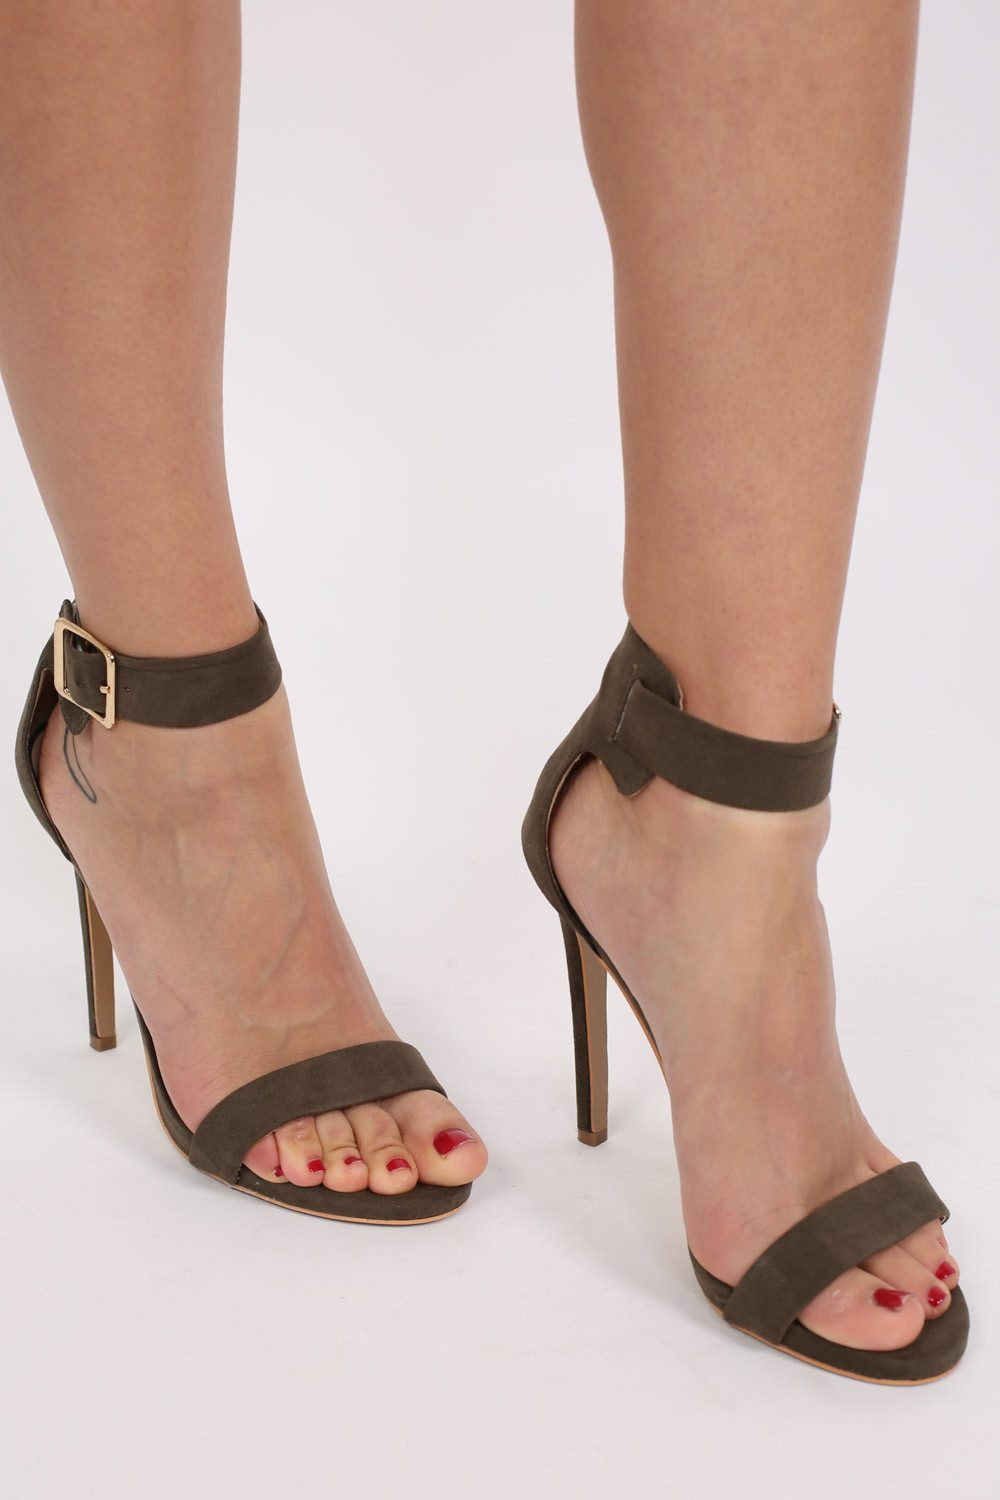 Faux Suede Strappy High Heel Sandals in Khaki Green 0